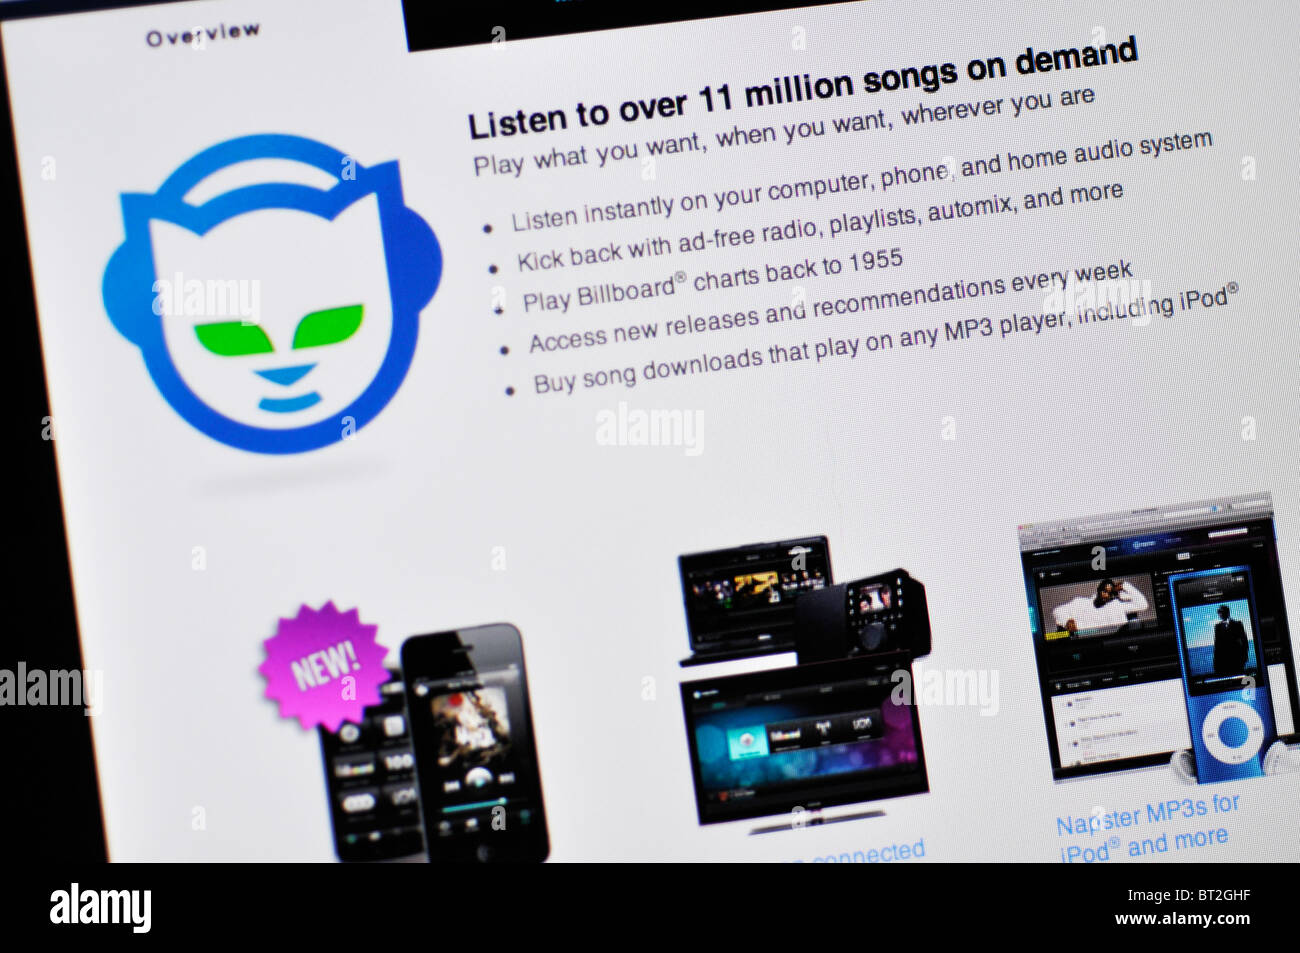 an overview of napster a site for mp3 sharing This site uses cookies for analytics, personalized content and ads by continuing to browse this site, you agree to this use with a napster music subscription, you can think of a song and play it instantly napster is your new music collection complete with entire albums and artist hits spanning.